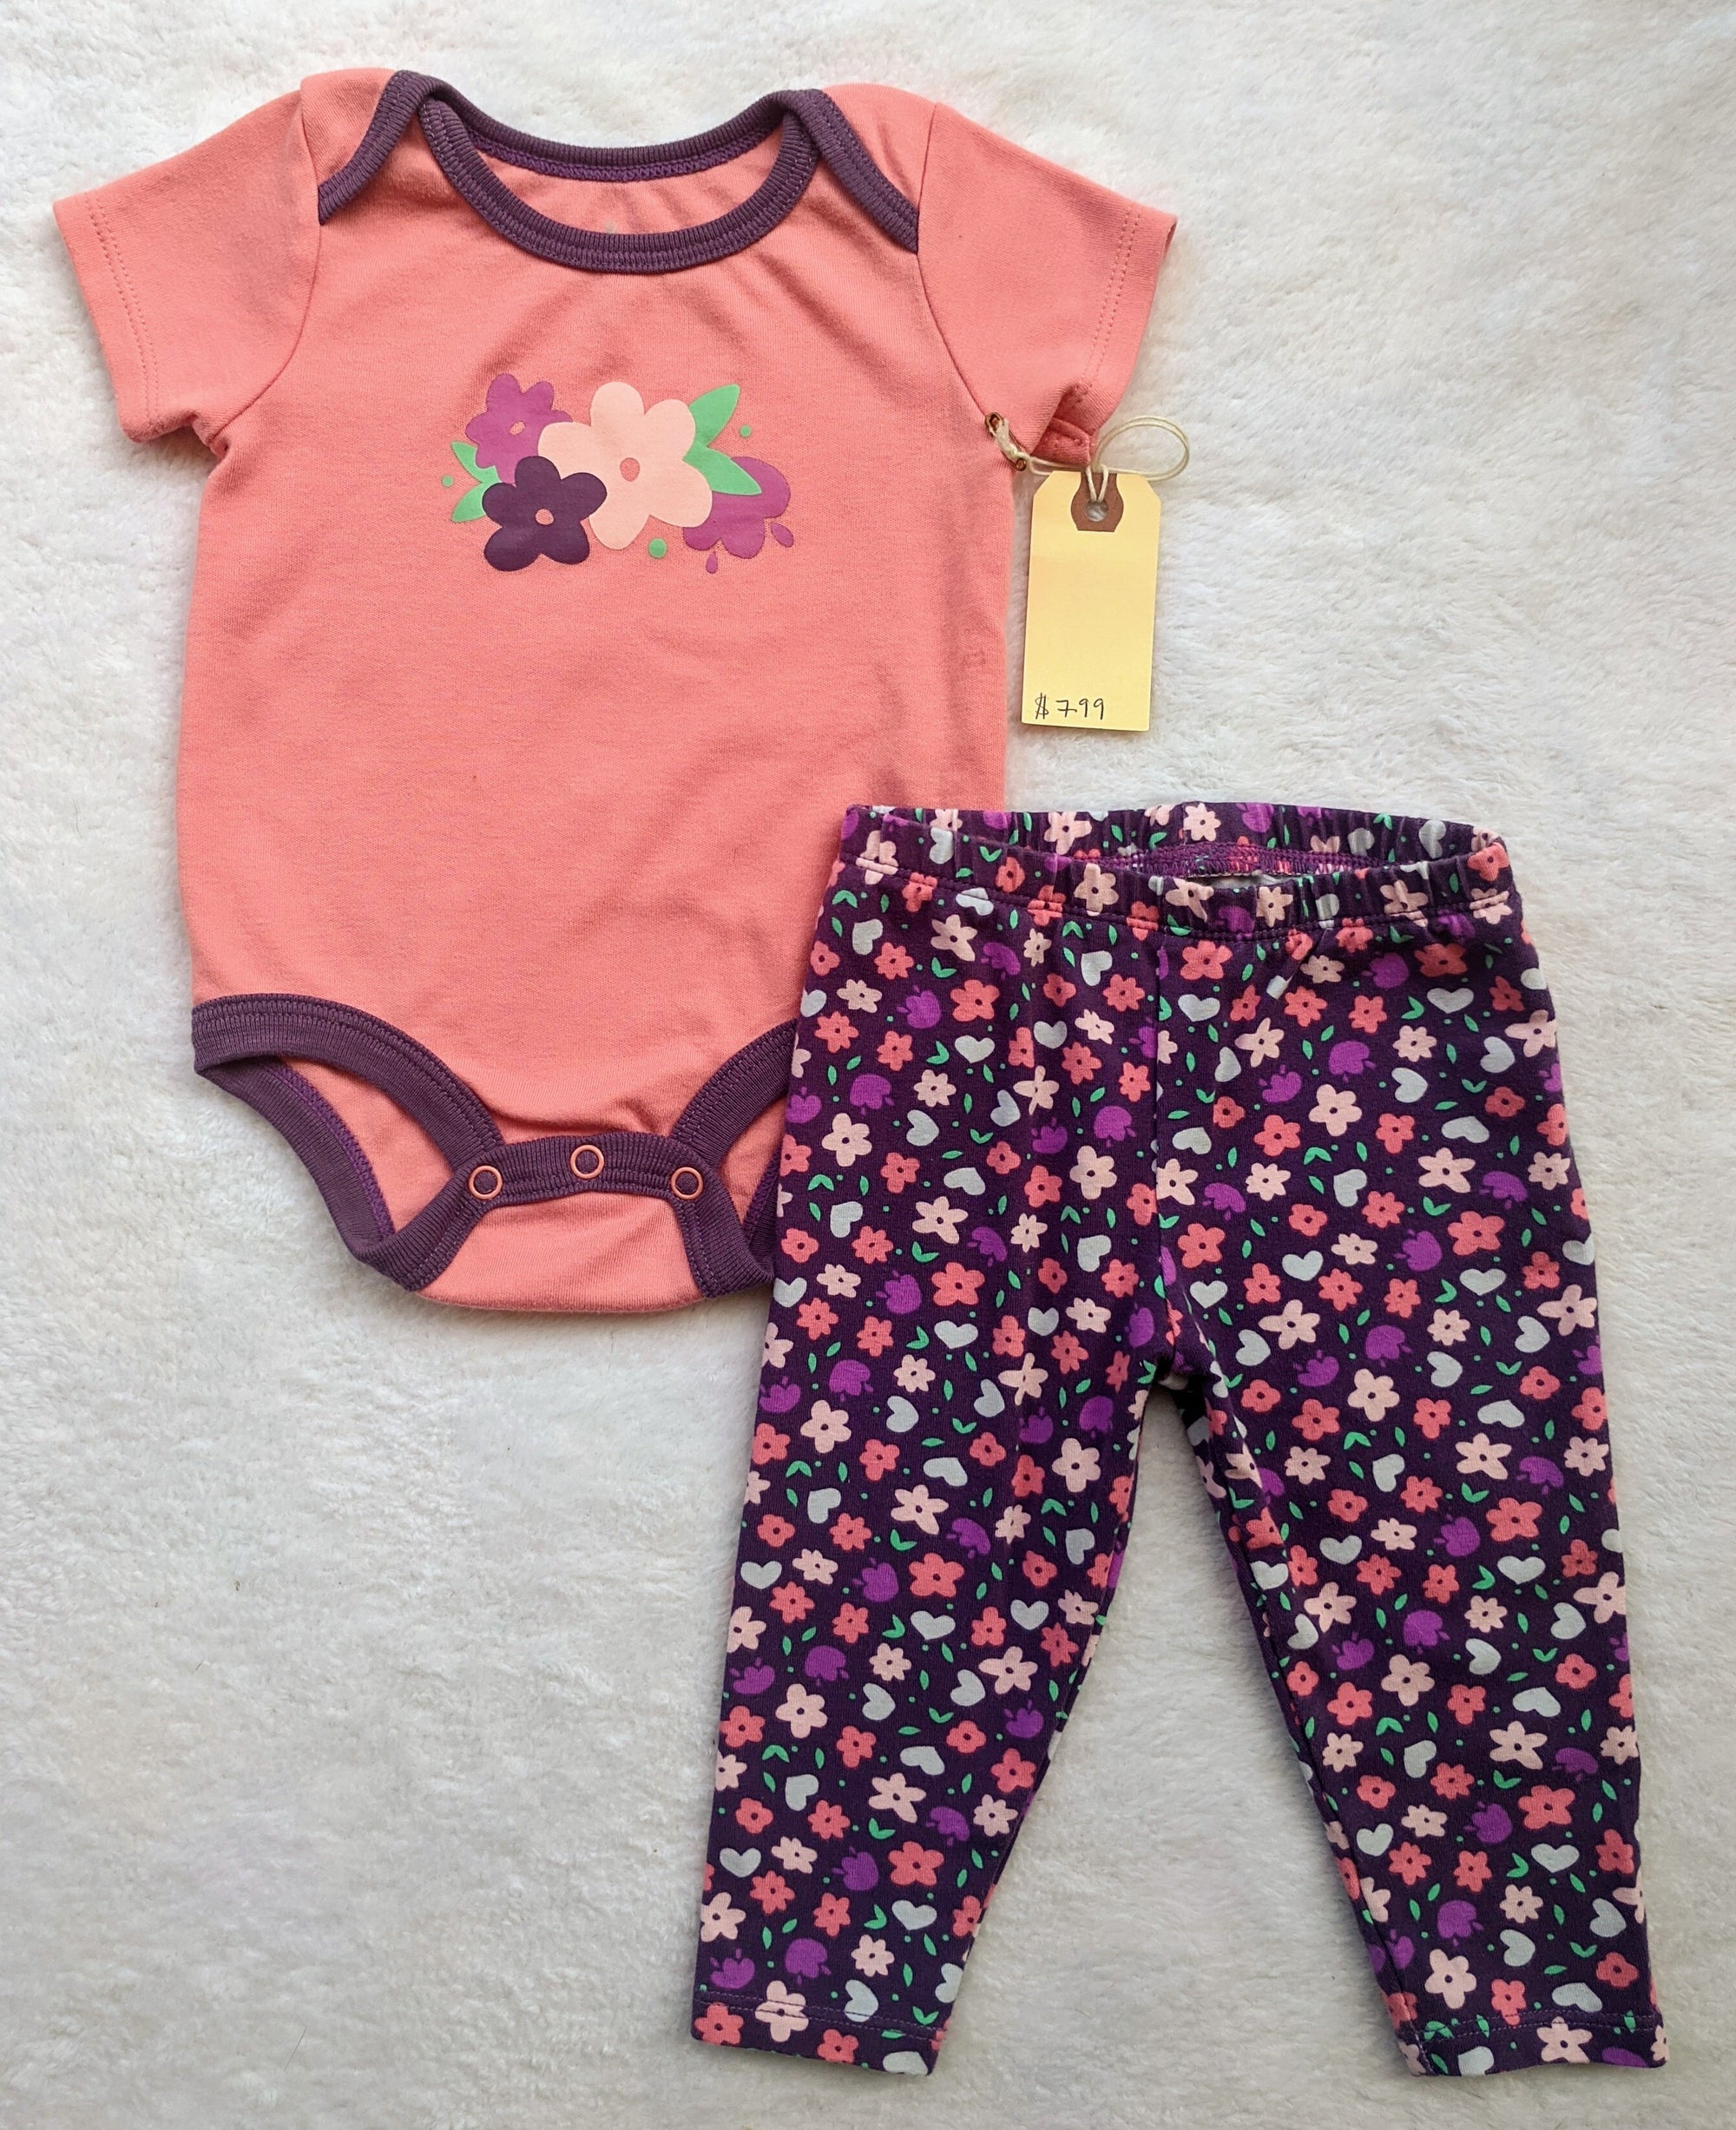 Resale 3-6 m Lullaby Lane Pink Floral Outfit